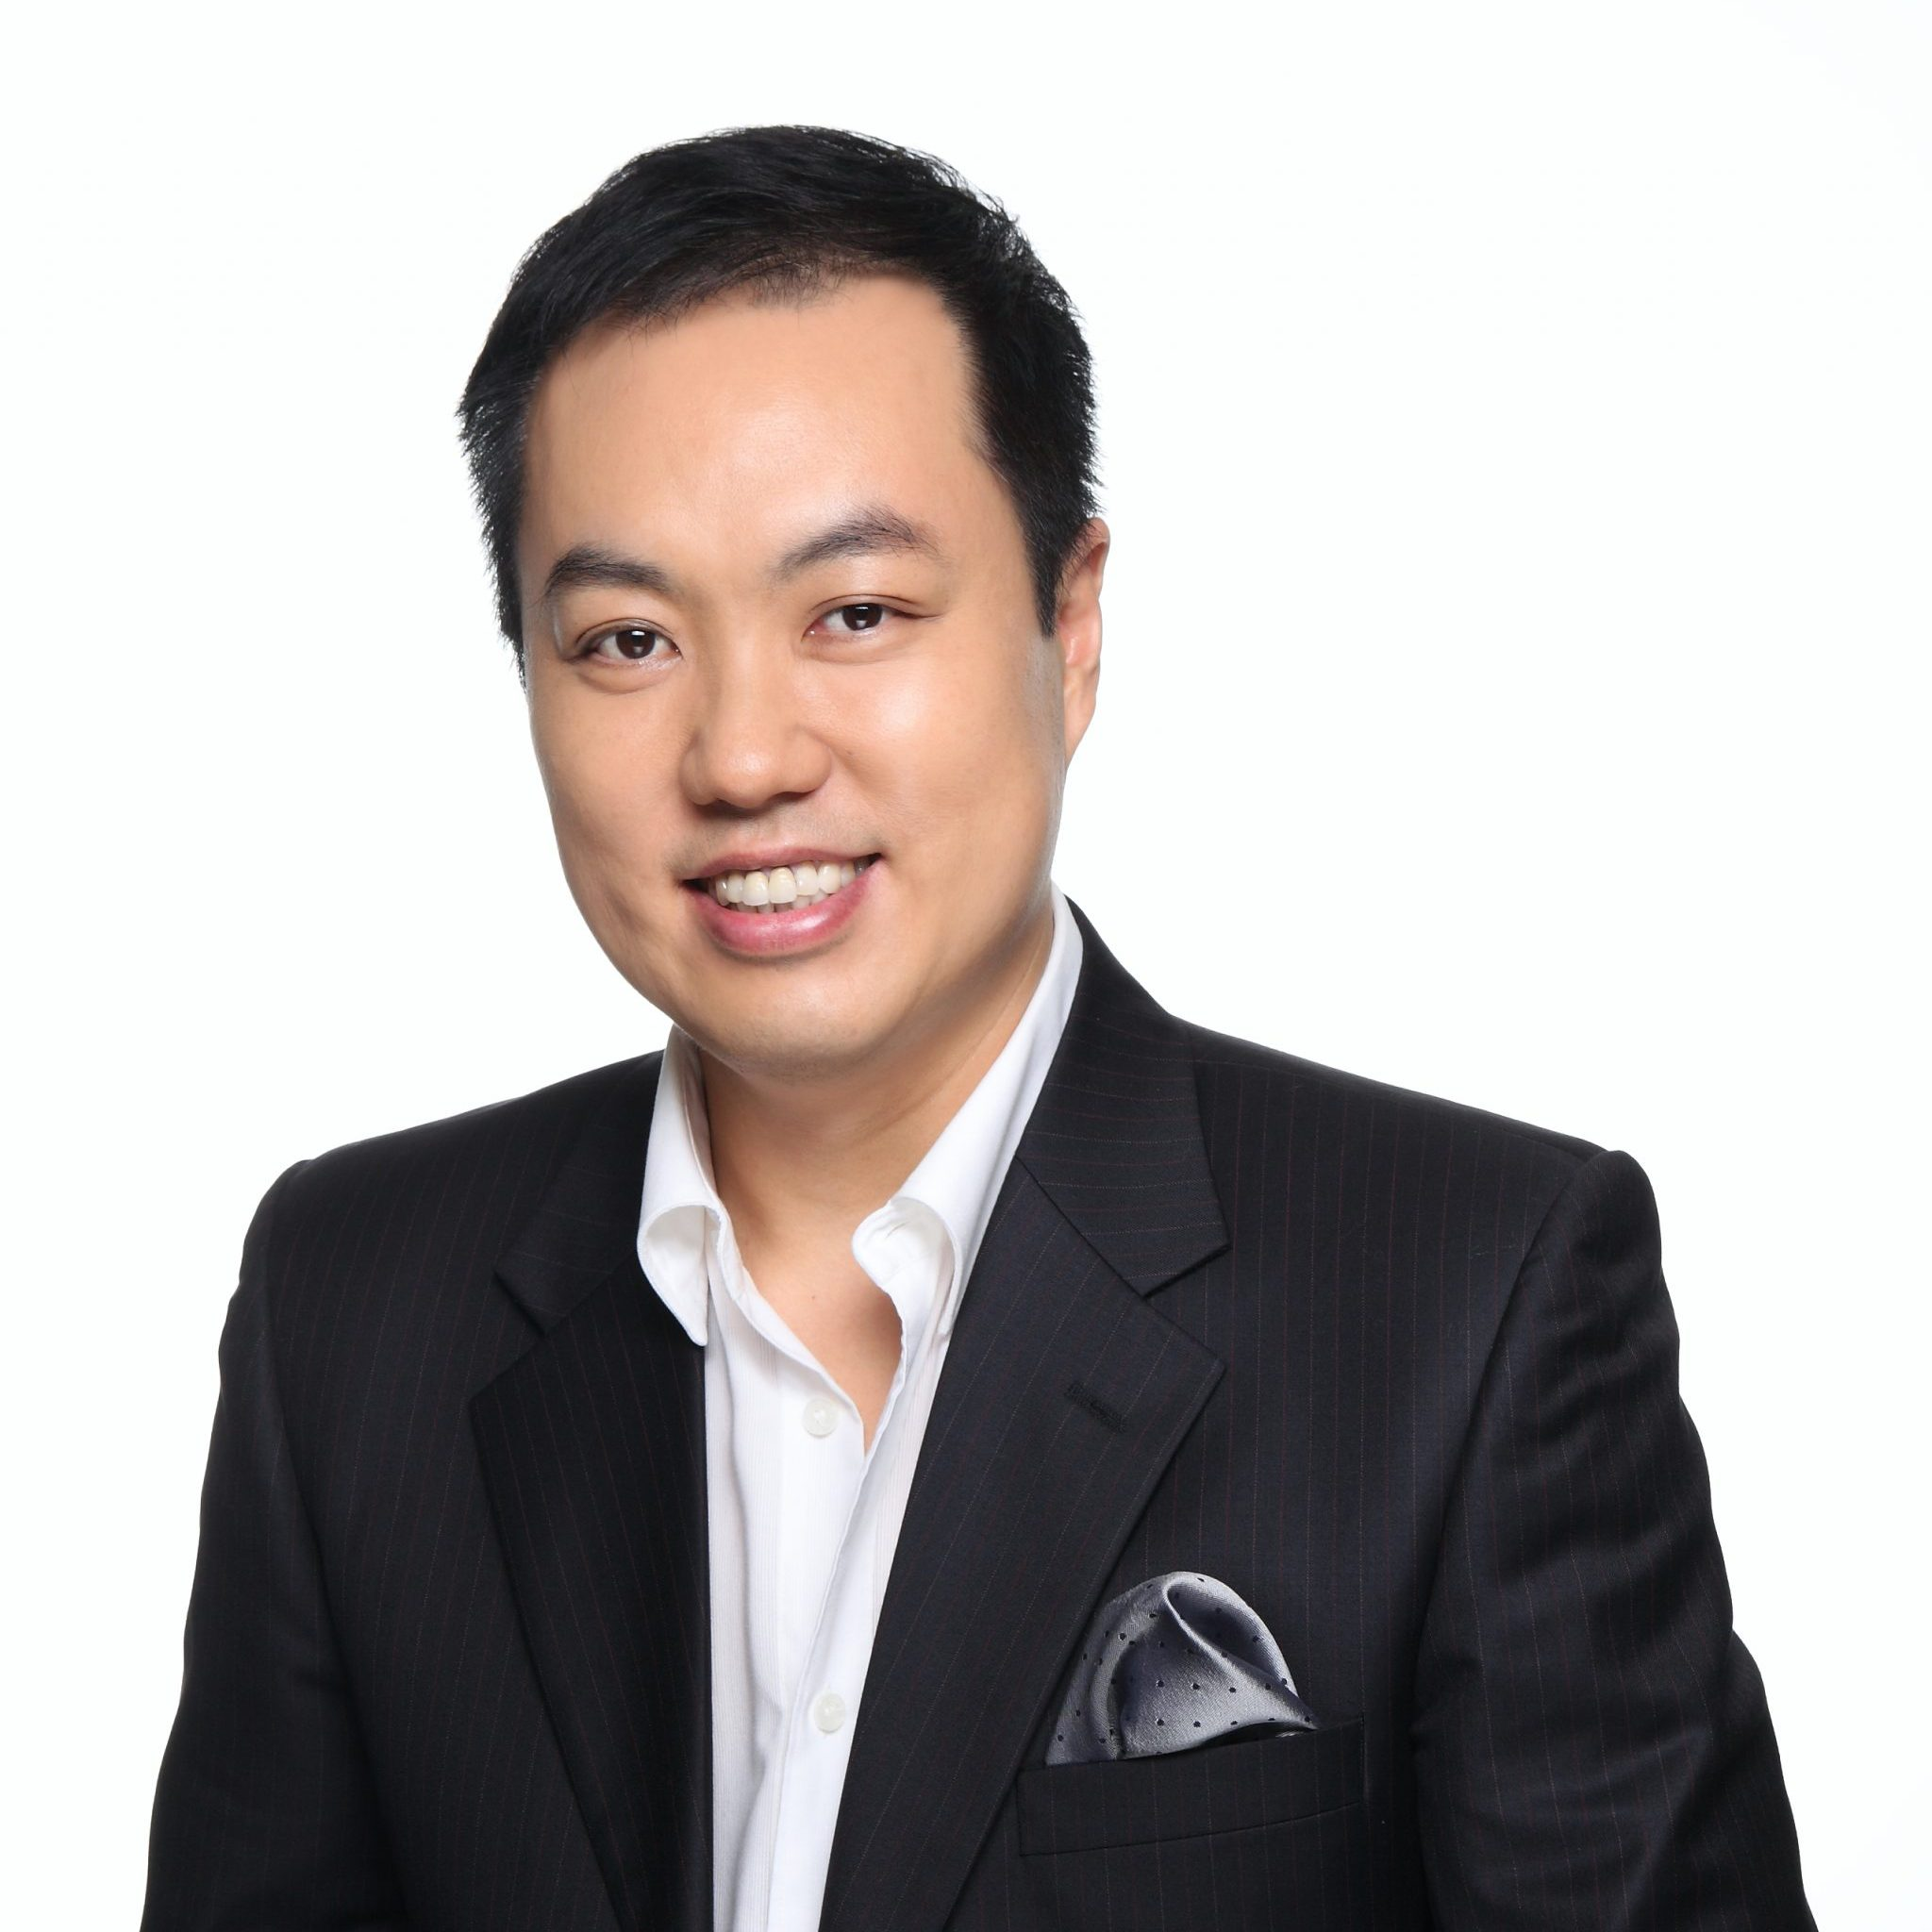 Image Consulting Programme Faculty - AICI Image Consultant Thomas